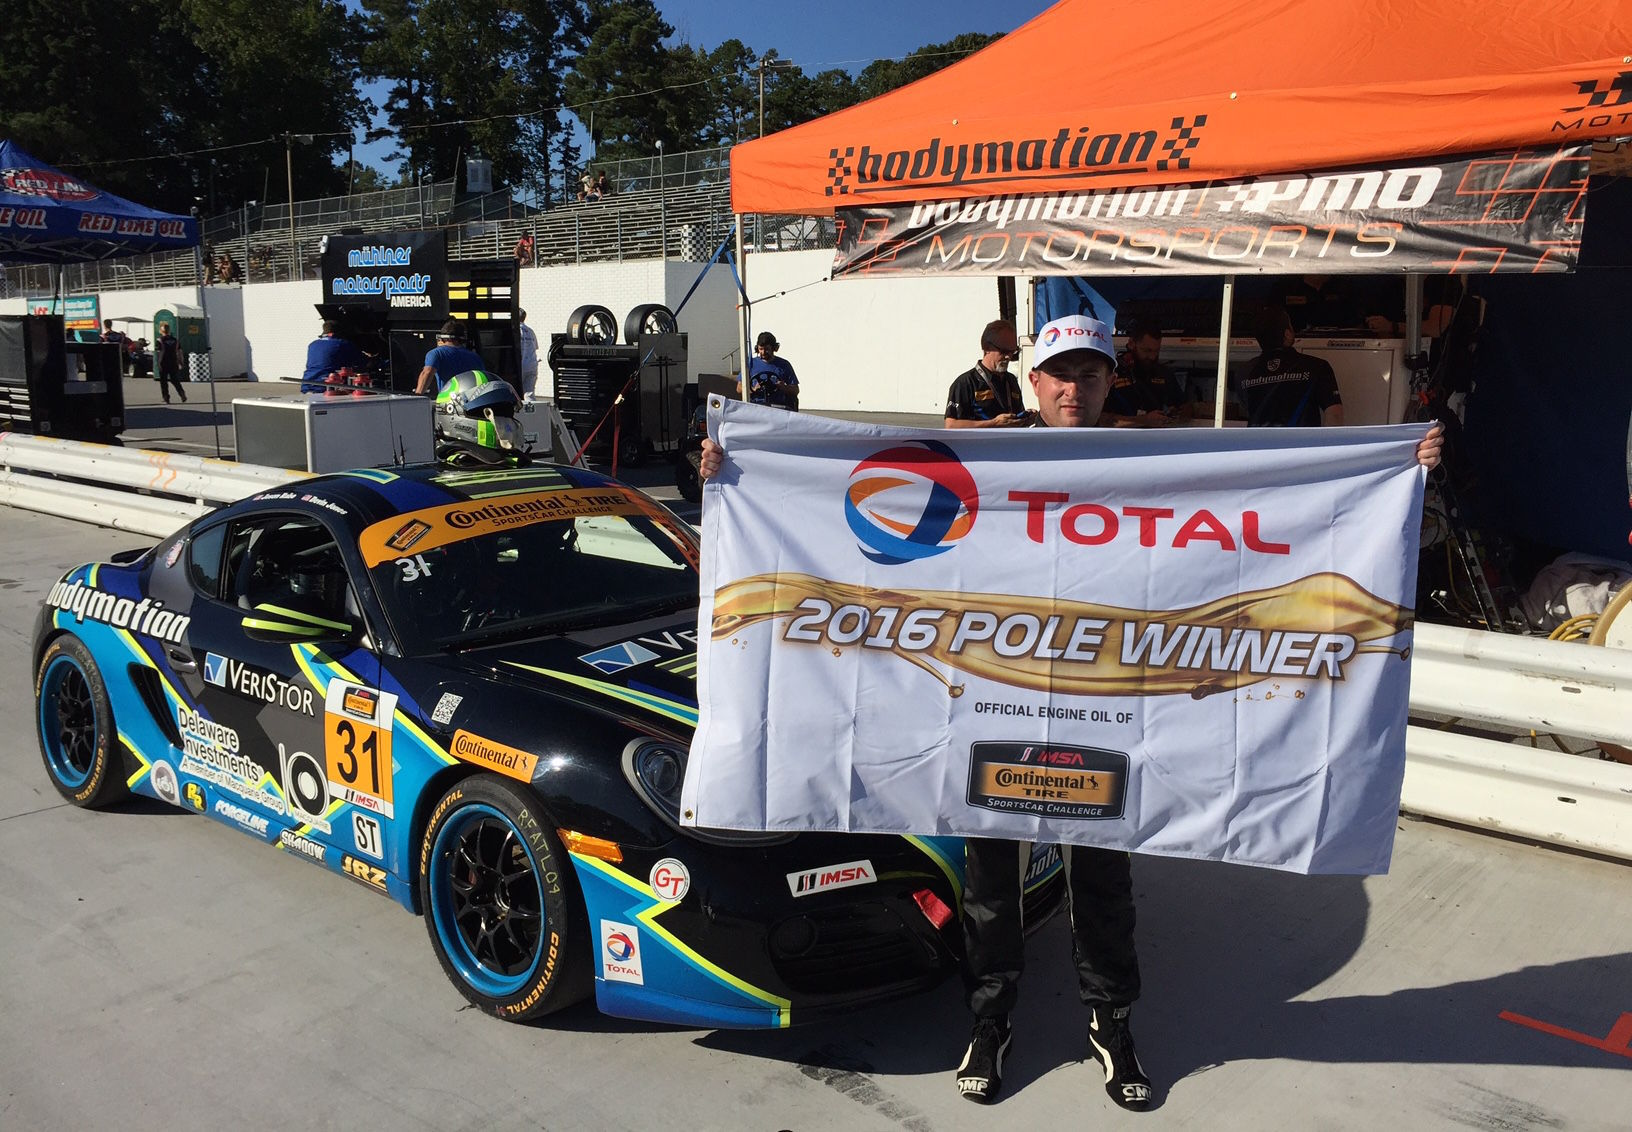 2016 Porsche Cayman | Jason Rabe Wins IMSA CTSC ST Class Pole at Road Atlanta in the #31 Bodymotion Racing Porsche Cayman on Forgeline GA3R Wheels